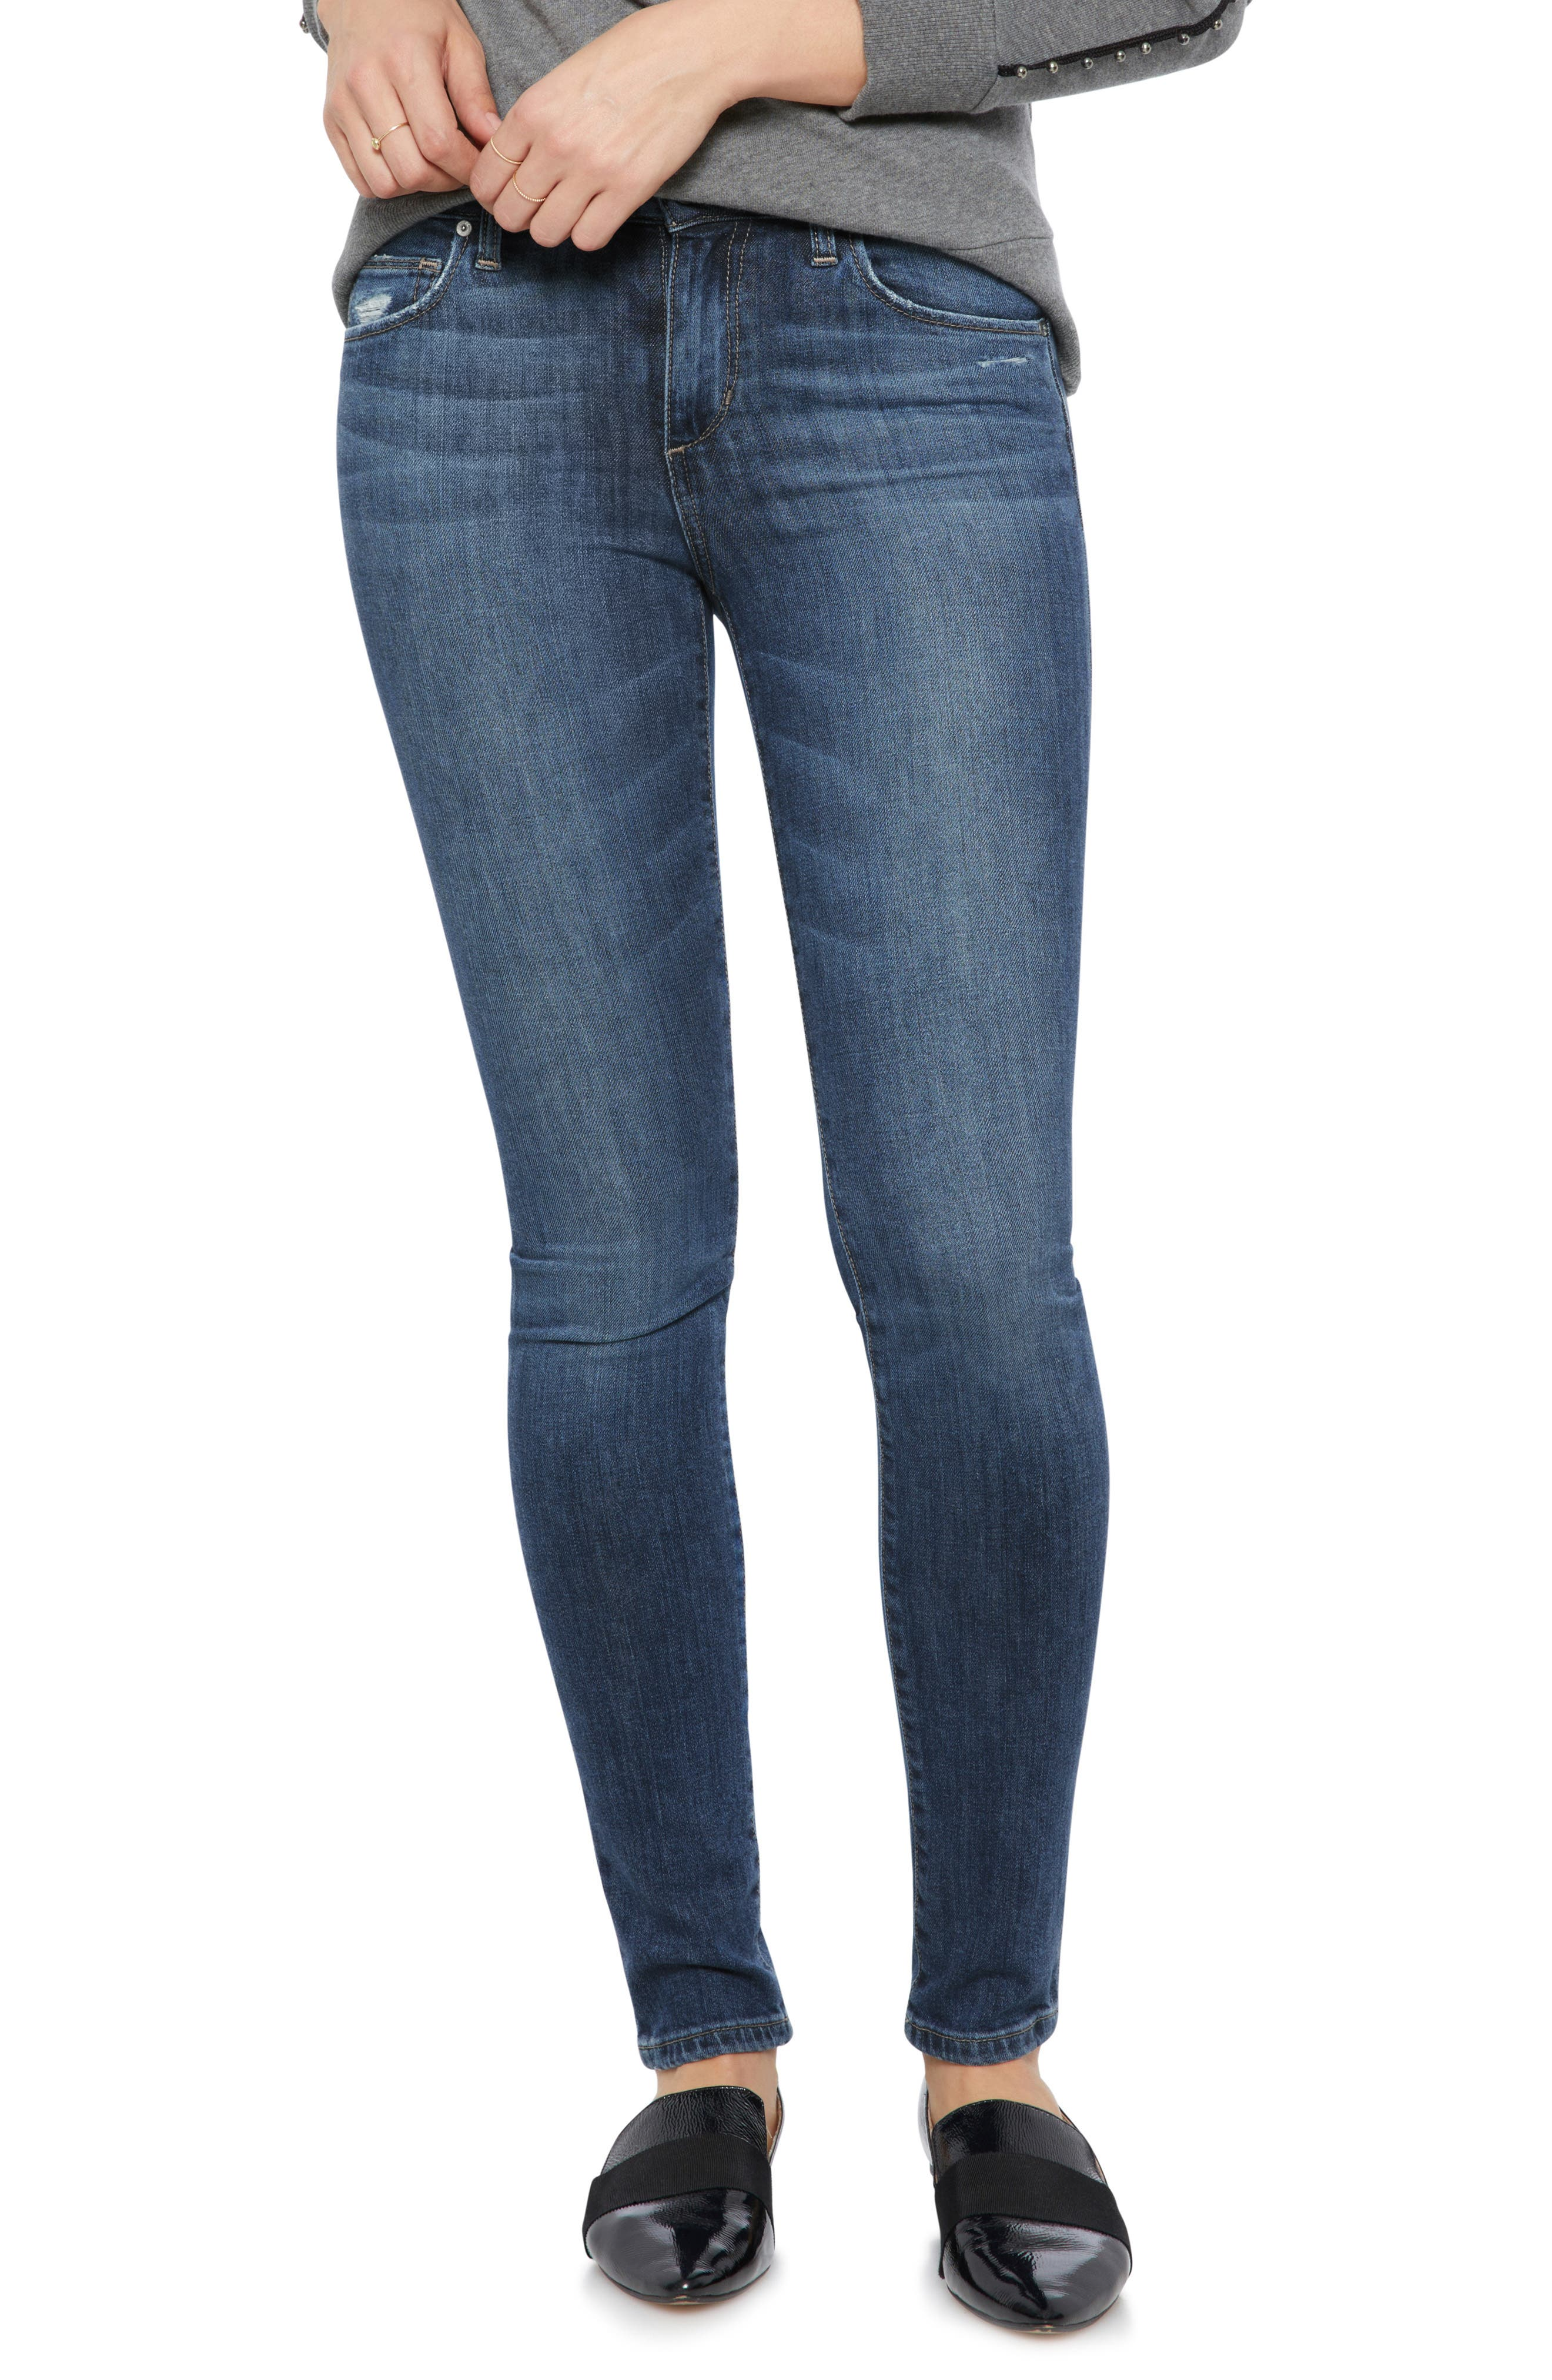 Icon Skinny Jeans,                             Main thumbnail 1, color,                             421